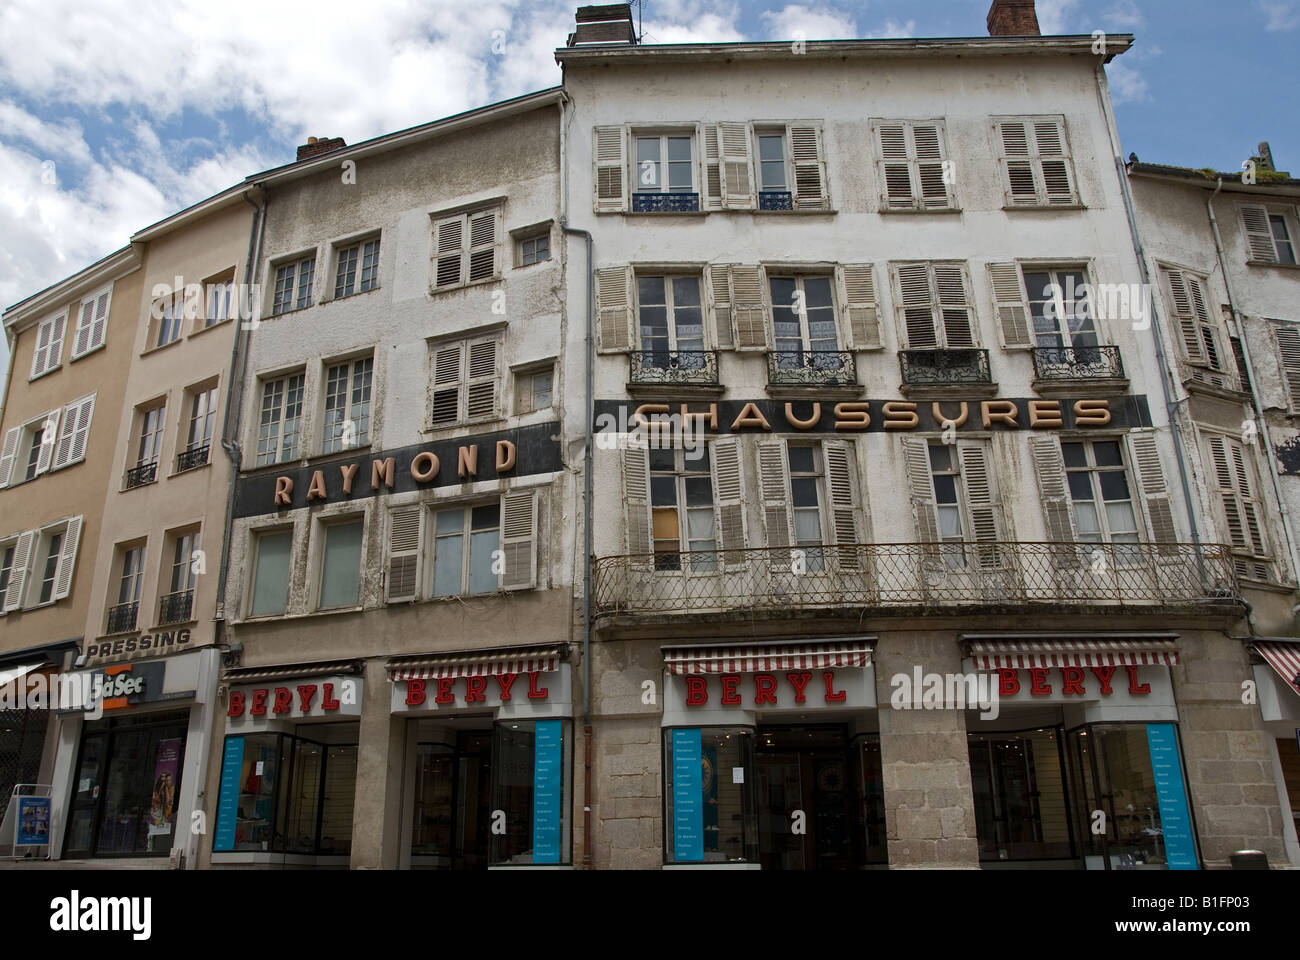 Stock photo of a shop in limoges France - Stock Image